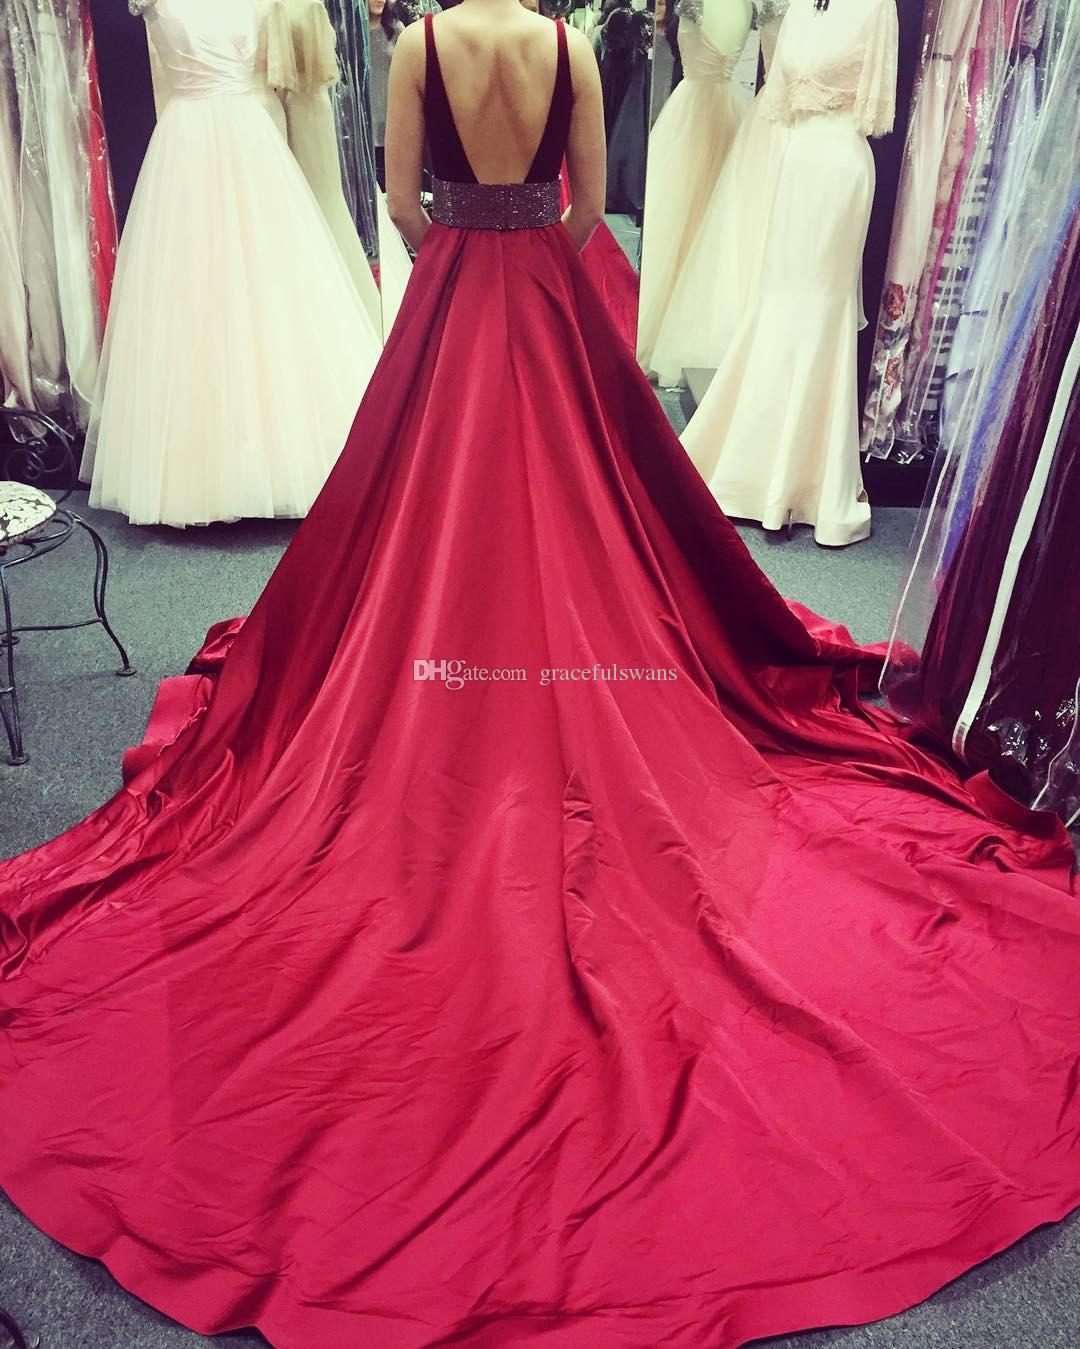 Burgundy Velvet A-Line Formal Evening Dresses Deep V Front Sexy Evening Gowns Tank Dark Red Satin Party Dresses with Beaded Backless